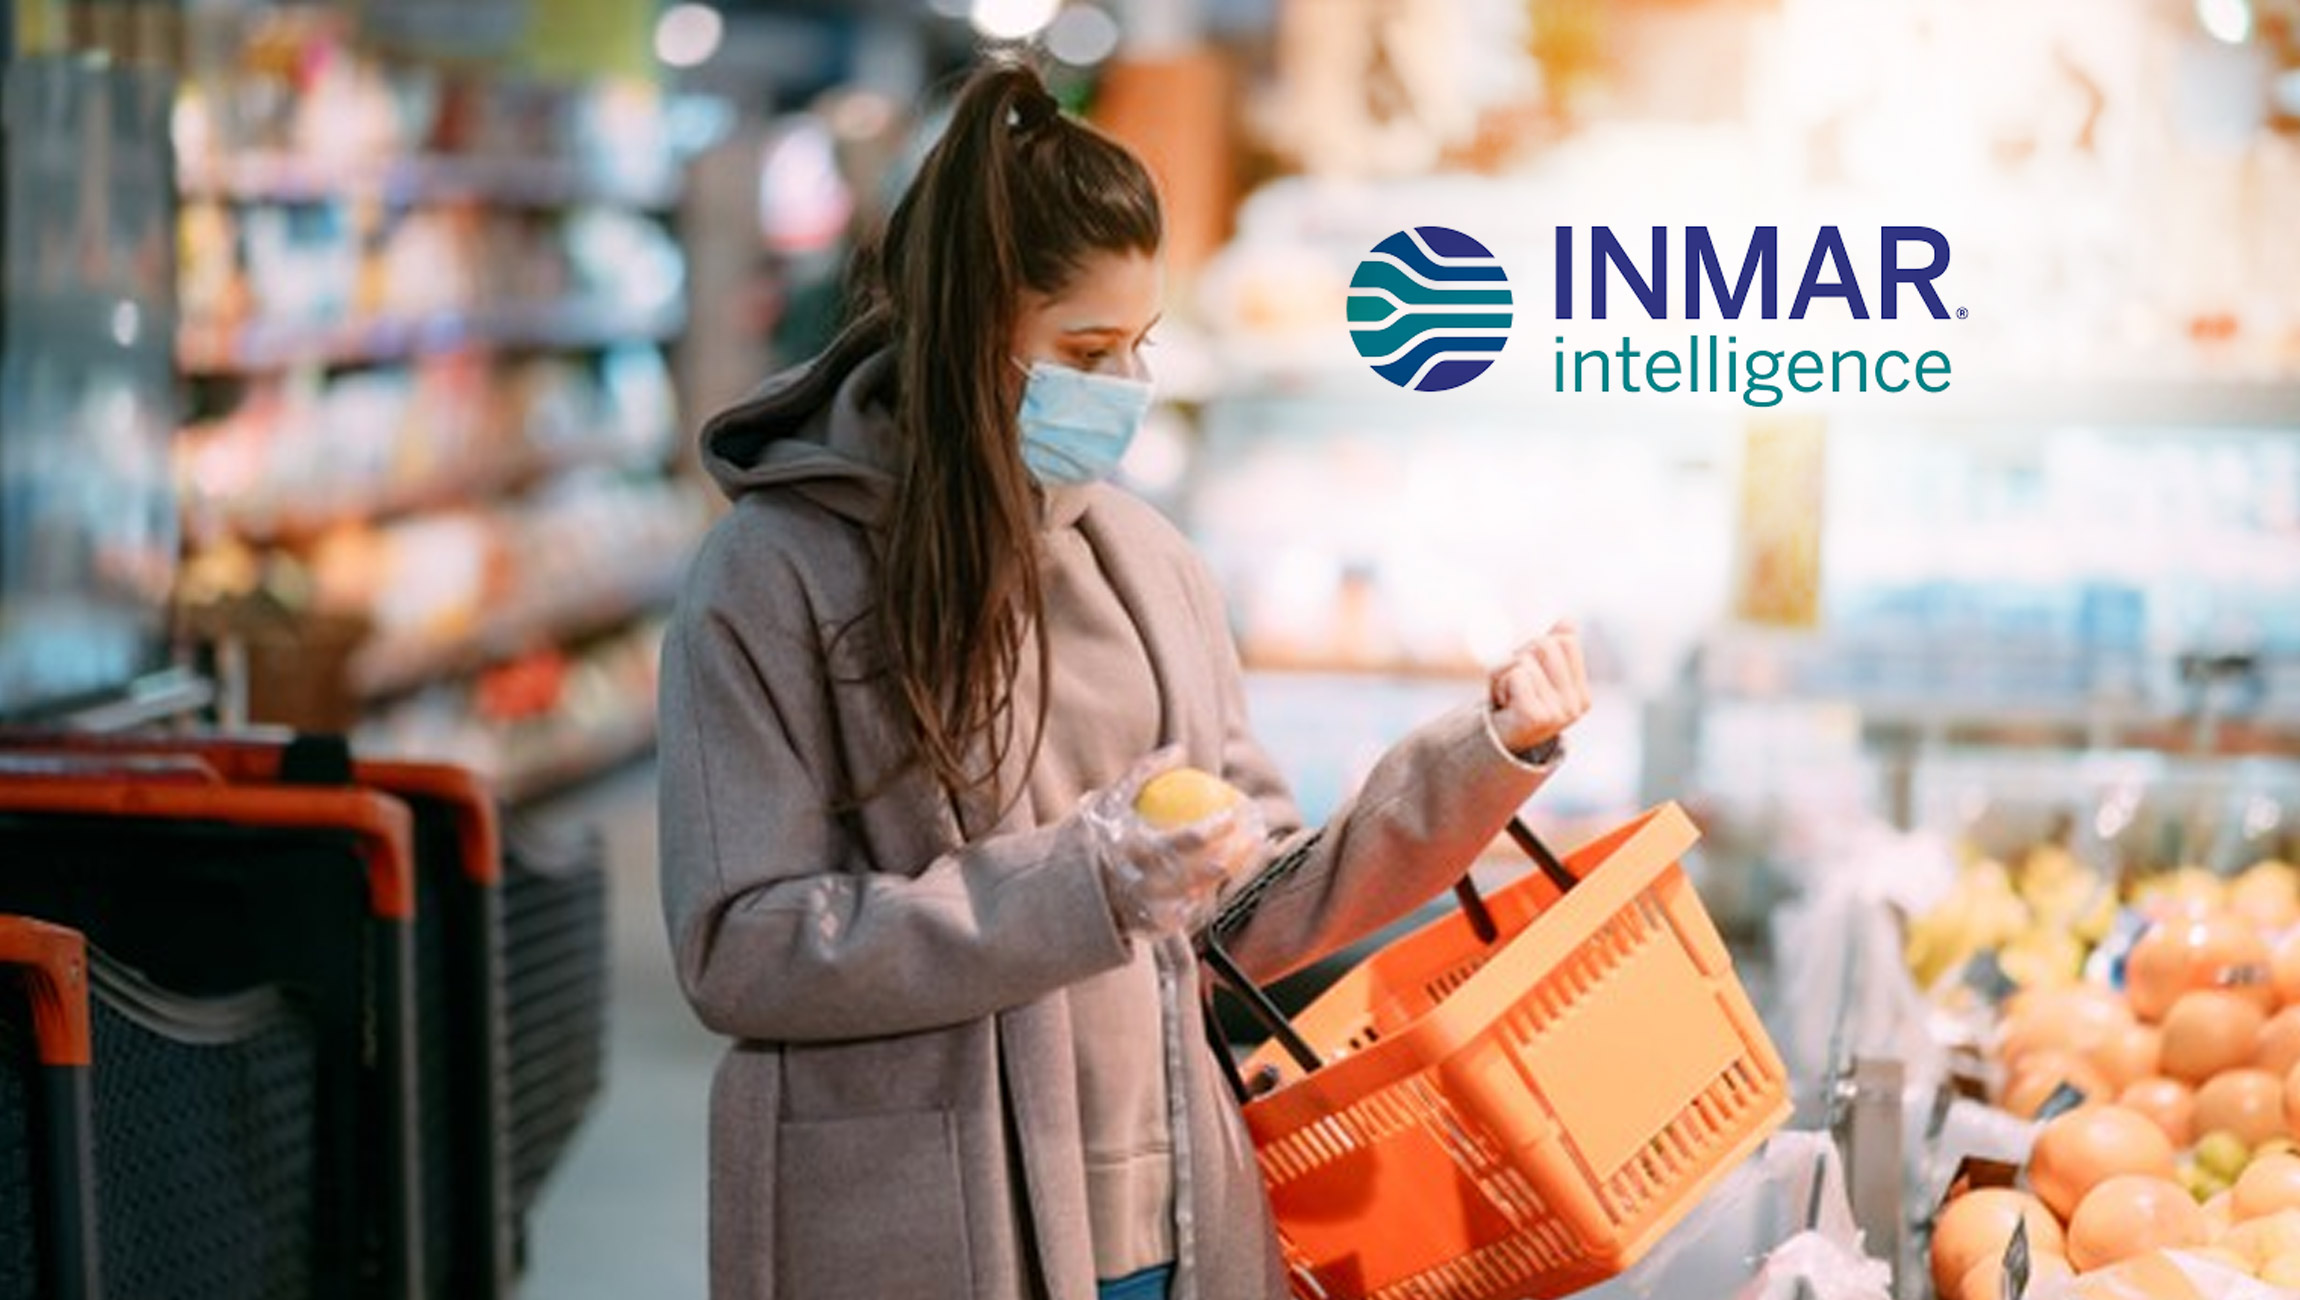 Forty-nine Percent of Shoppers Say Covid-19 Will Change The Way They Celebrate The Holidays, According to New Inmar Intelligence Survey